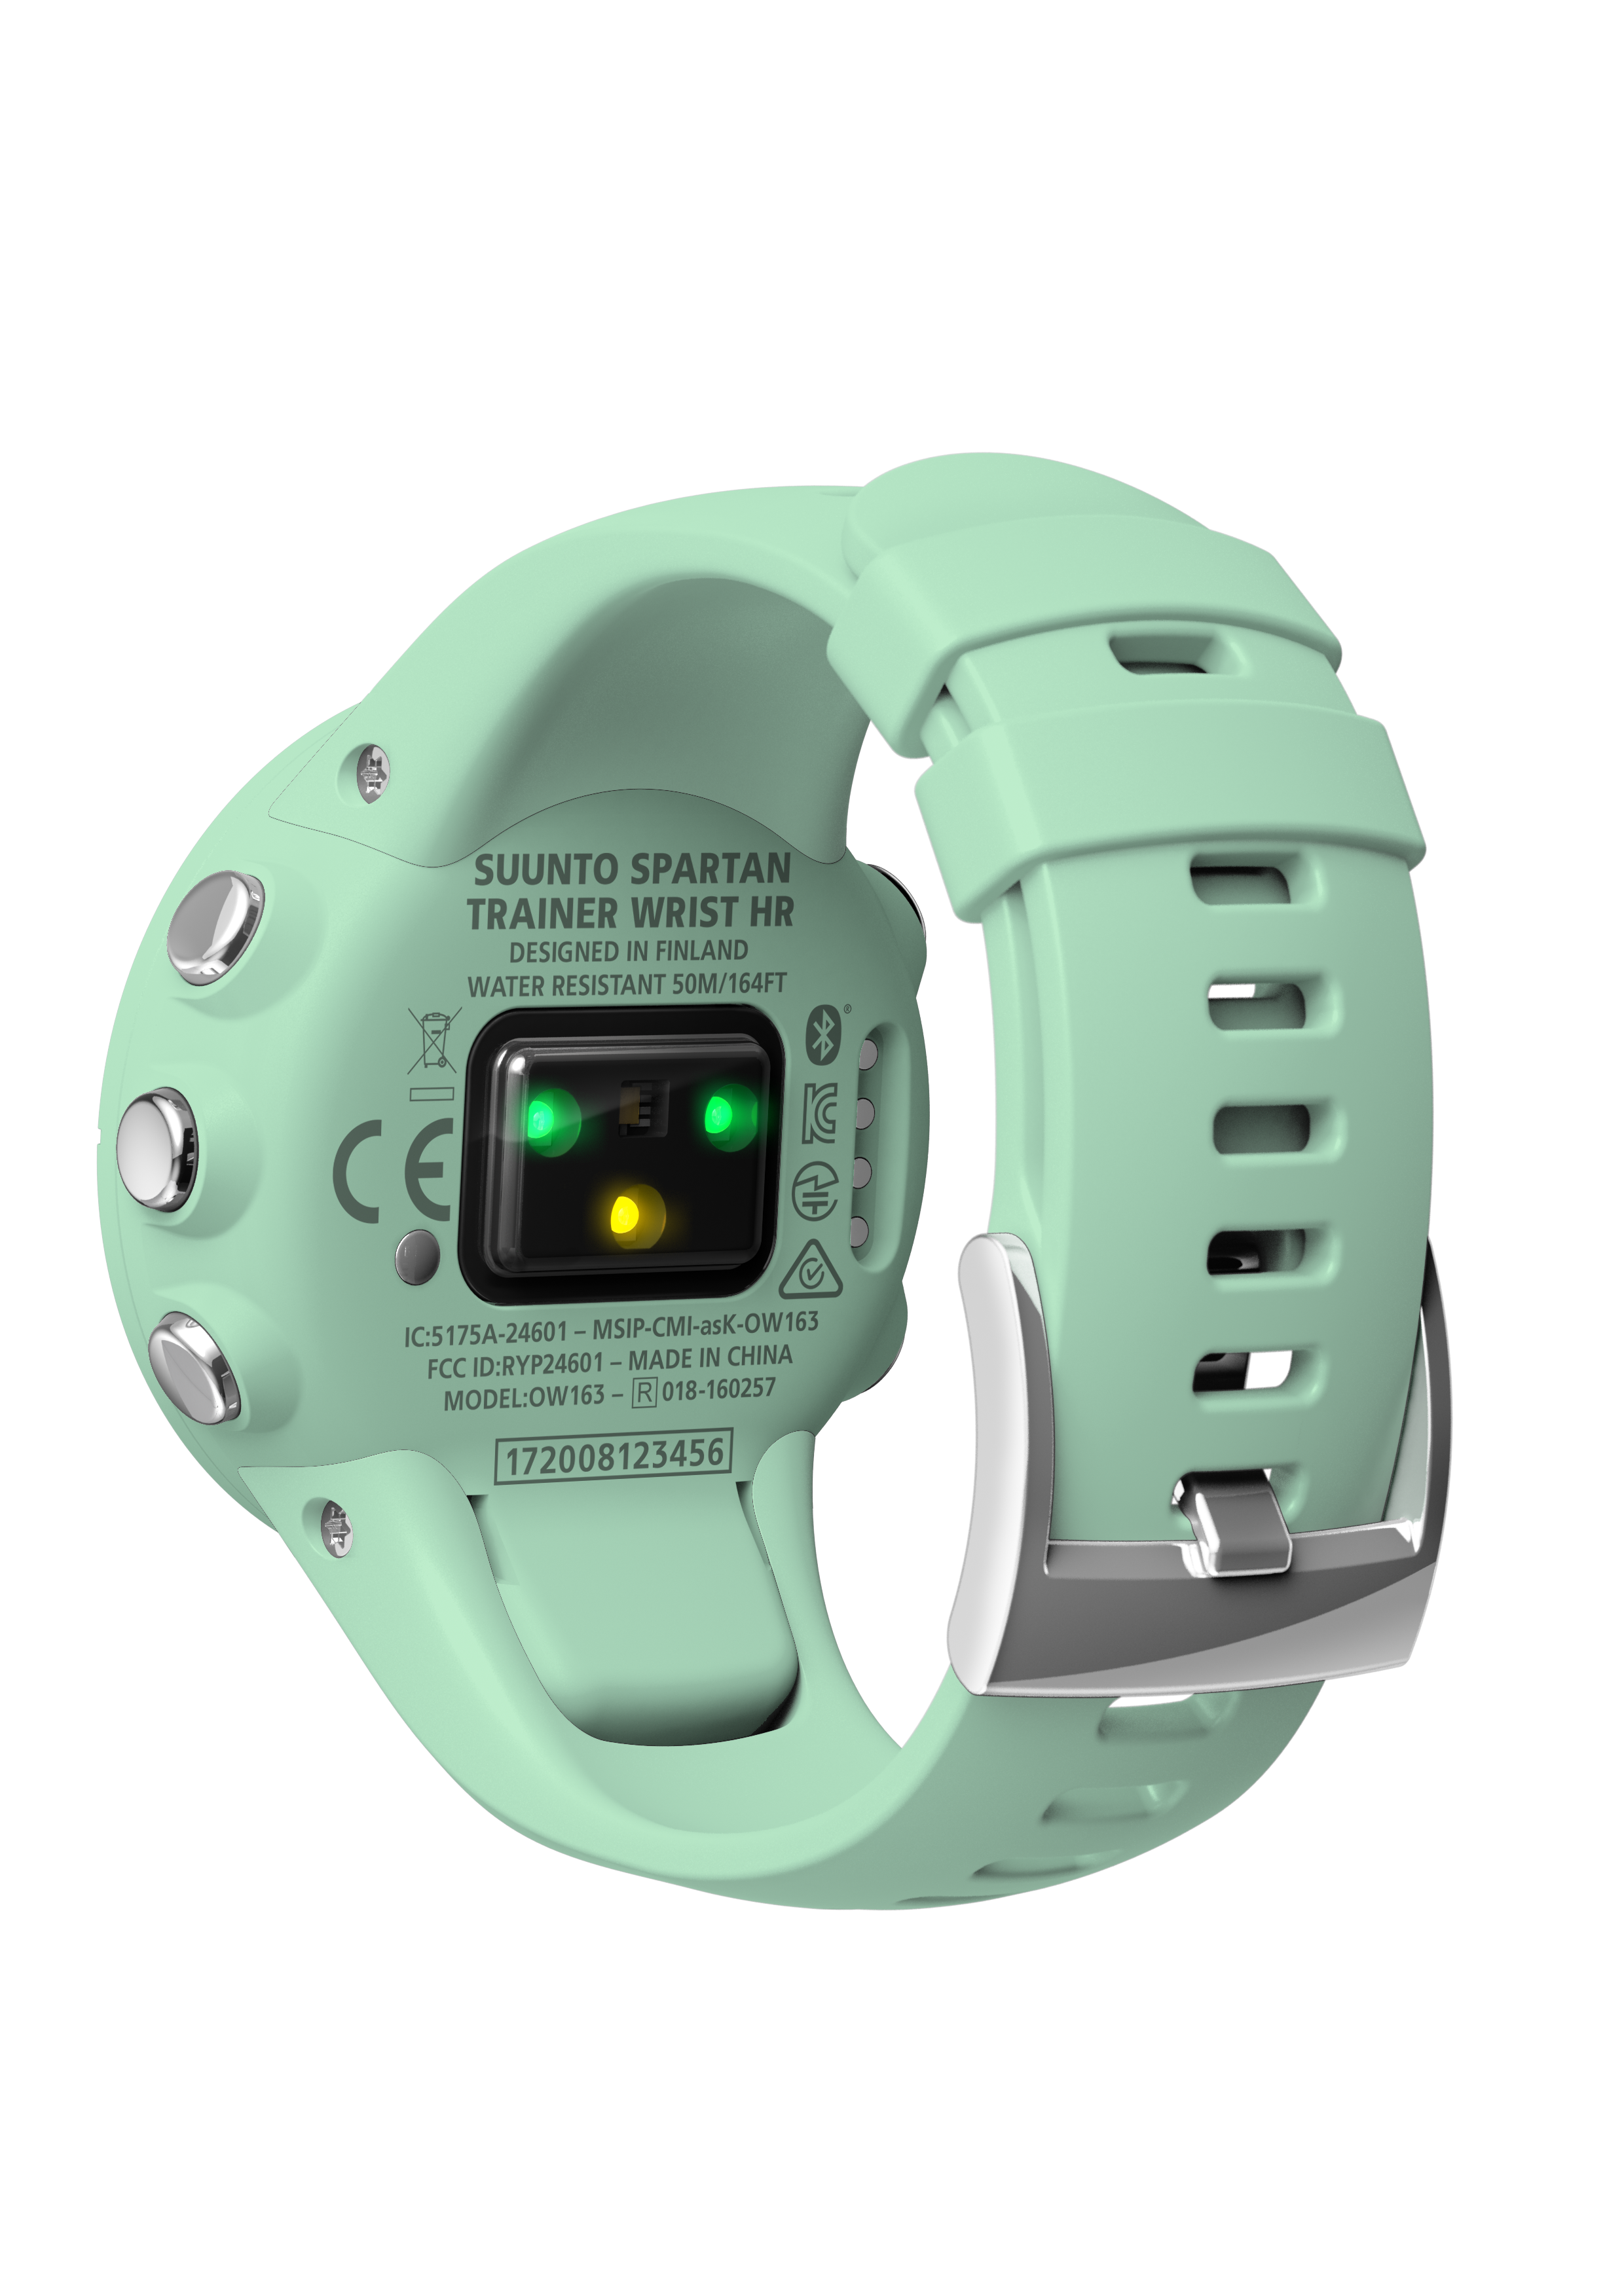 SS022670000 - SPARTAN - Trainer Wrist HR Ocean - Rear Perspective View.png